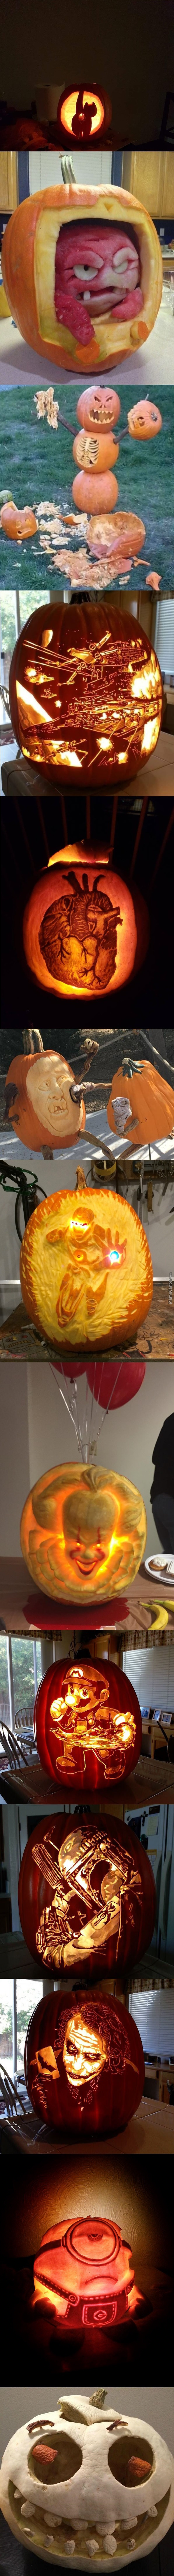 The 13 Days Of Halloween: Day 2 Pumpkin Perfection